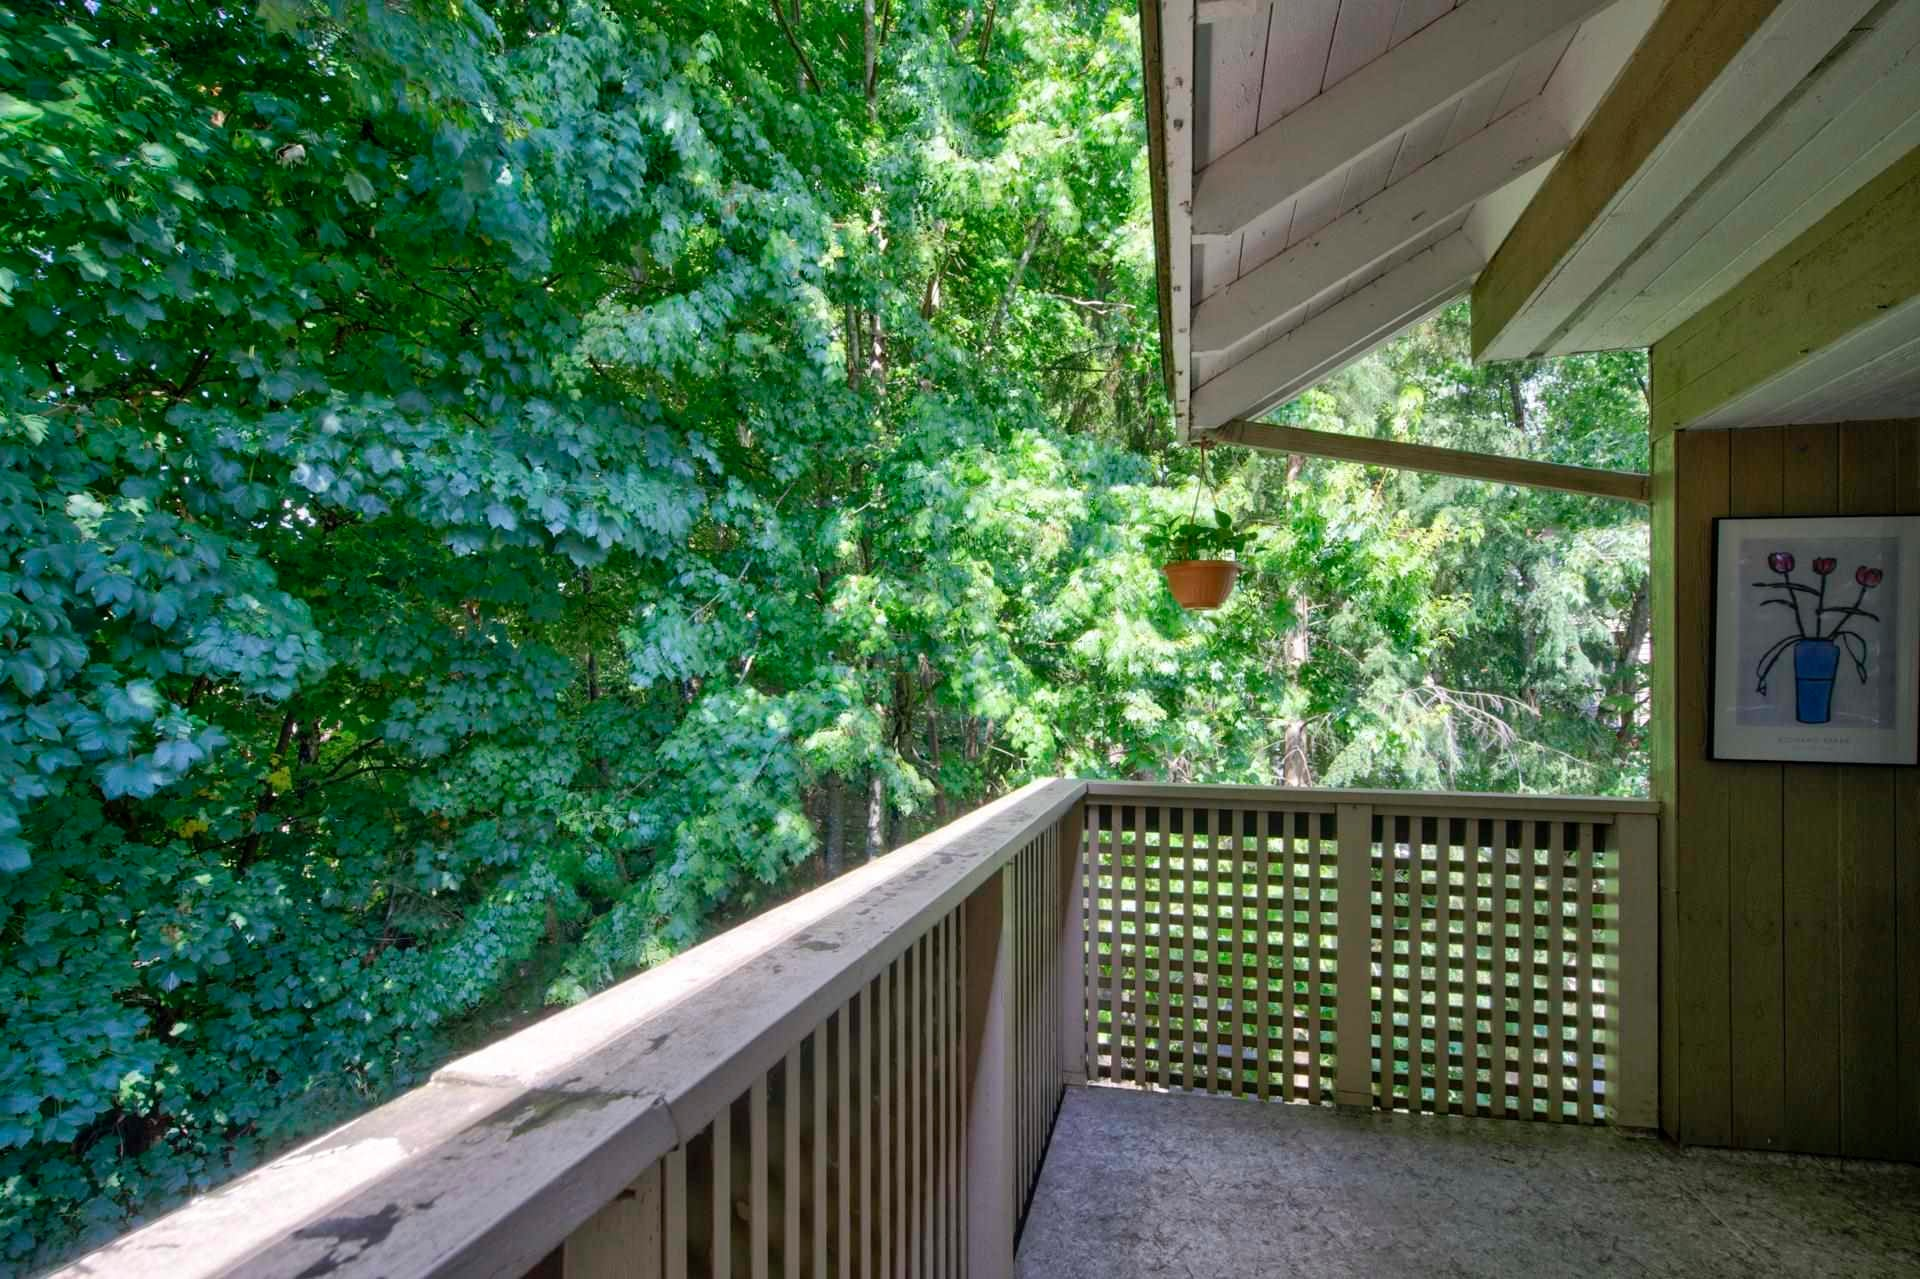 301 3187 MOUNTAIN HIGHWAY - Lynn Valley Apartment/Condo for sale, 2 Bedrooms (R2603681) - #20